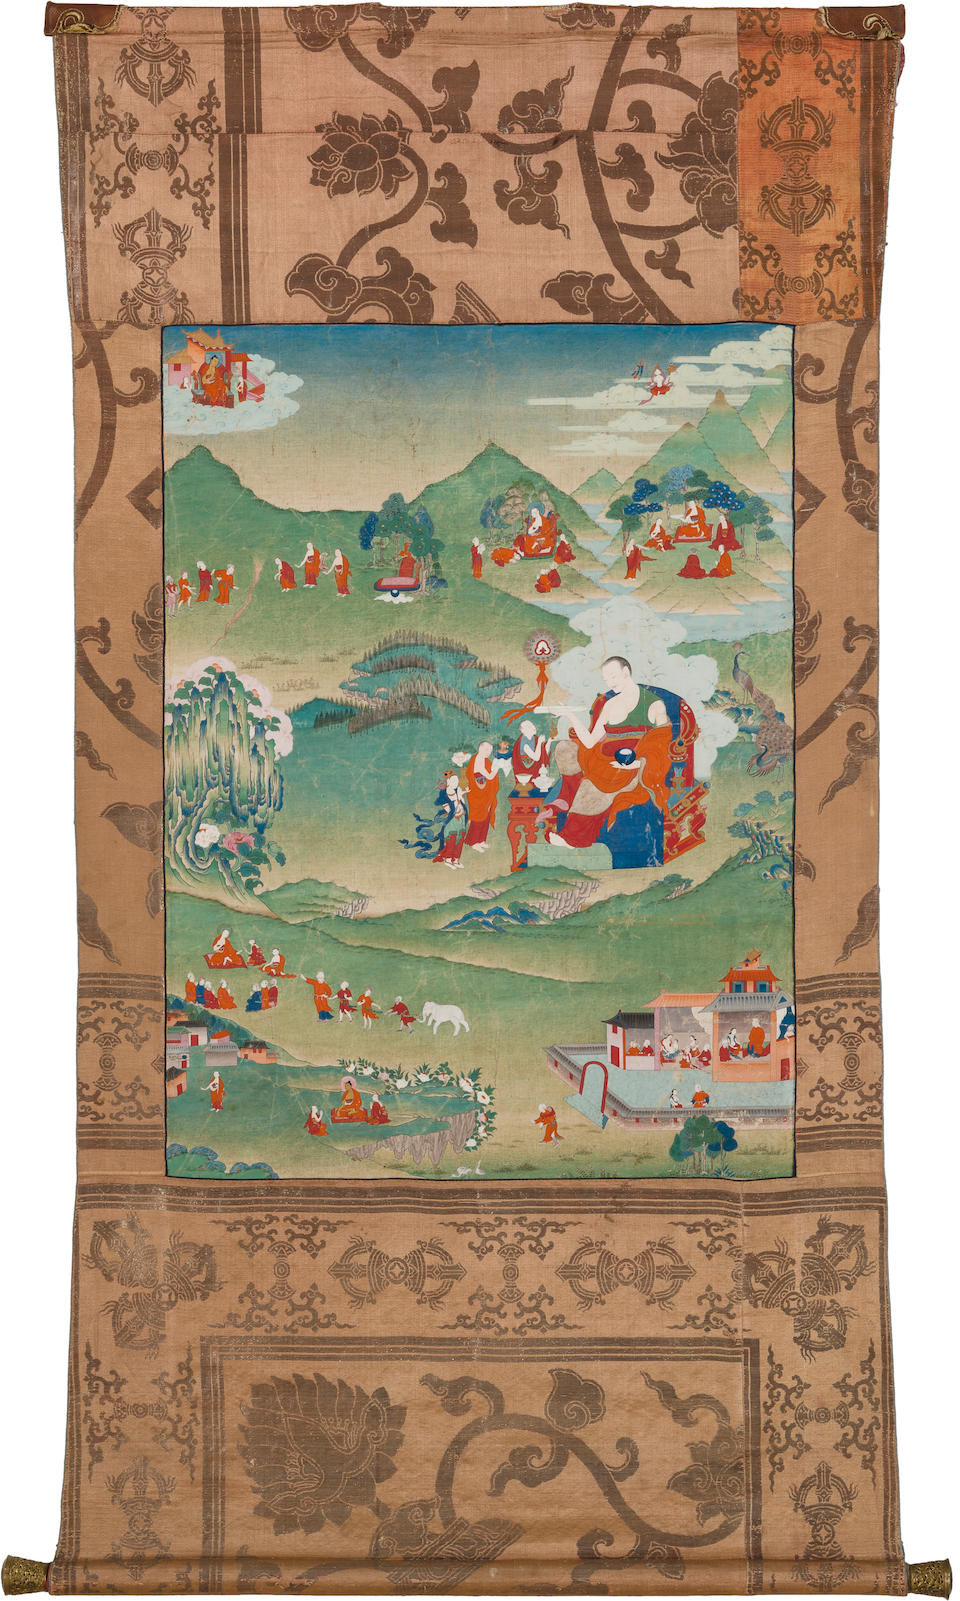 A thangka from an arhat set: Pindola Bharadvaja Eastern Tibet, Palpung style, 18th century